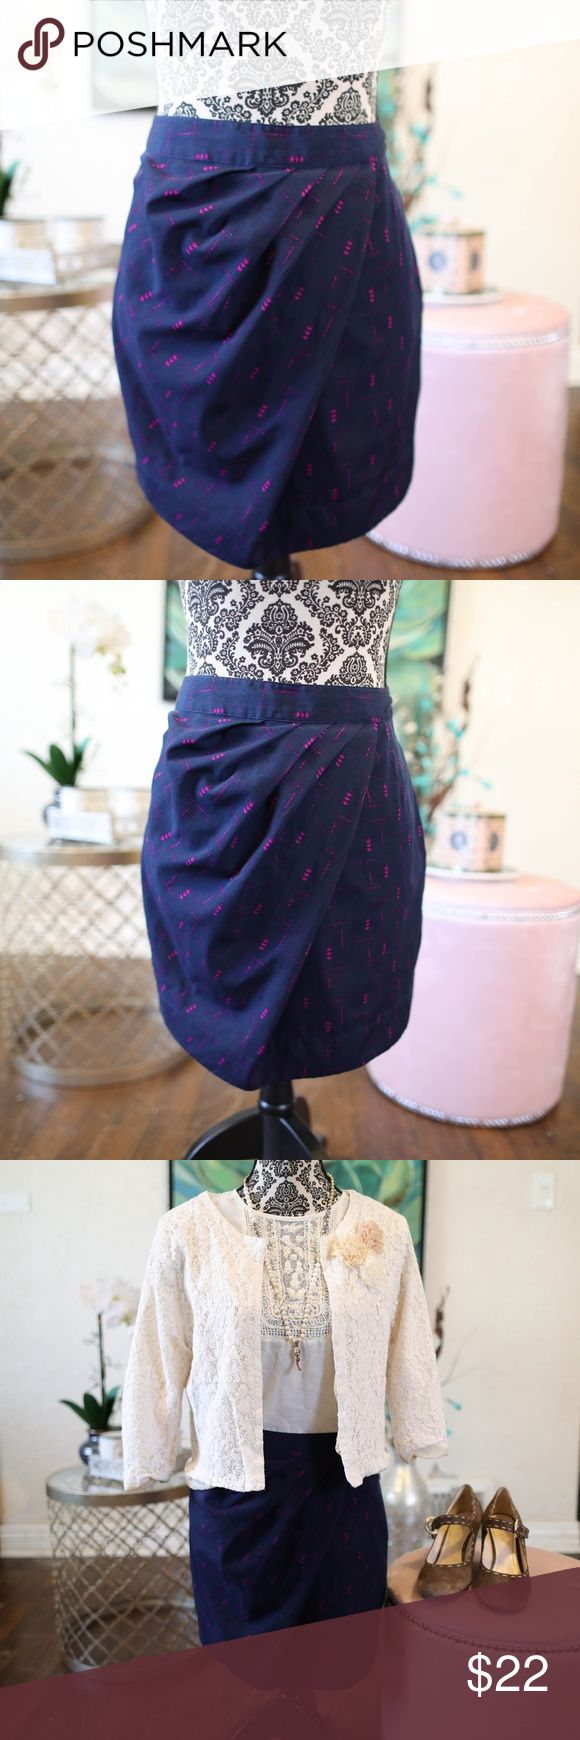 Darling blue skirt by silence and noise This darling blue skirt with pink arrow design and pleats swooping in from the side looks great paired with the twenty one vintage inspired jacket.  100% ployester silence + noise Skirts